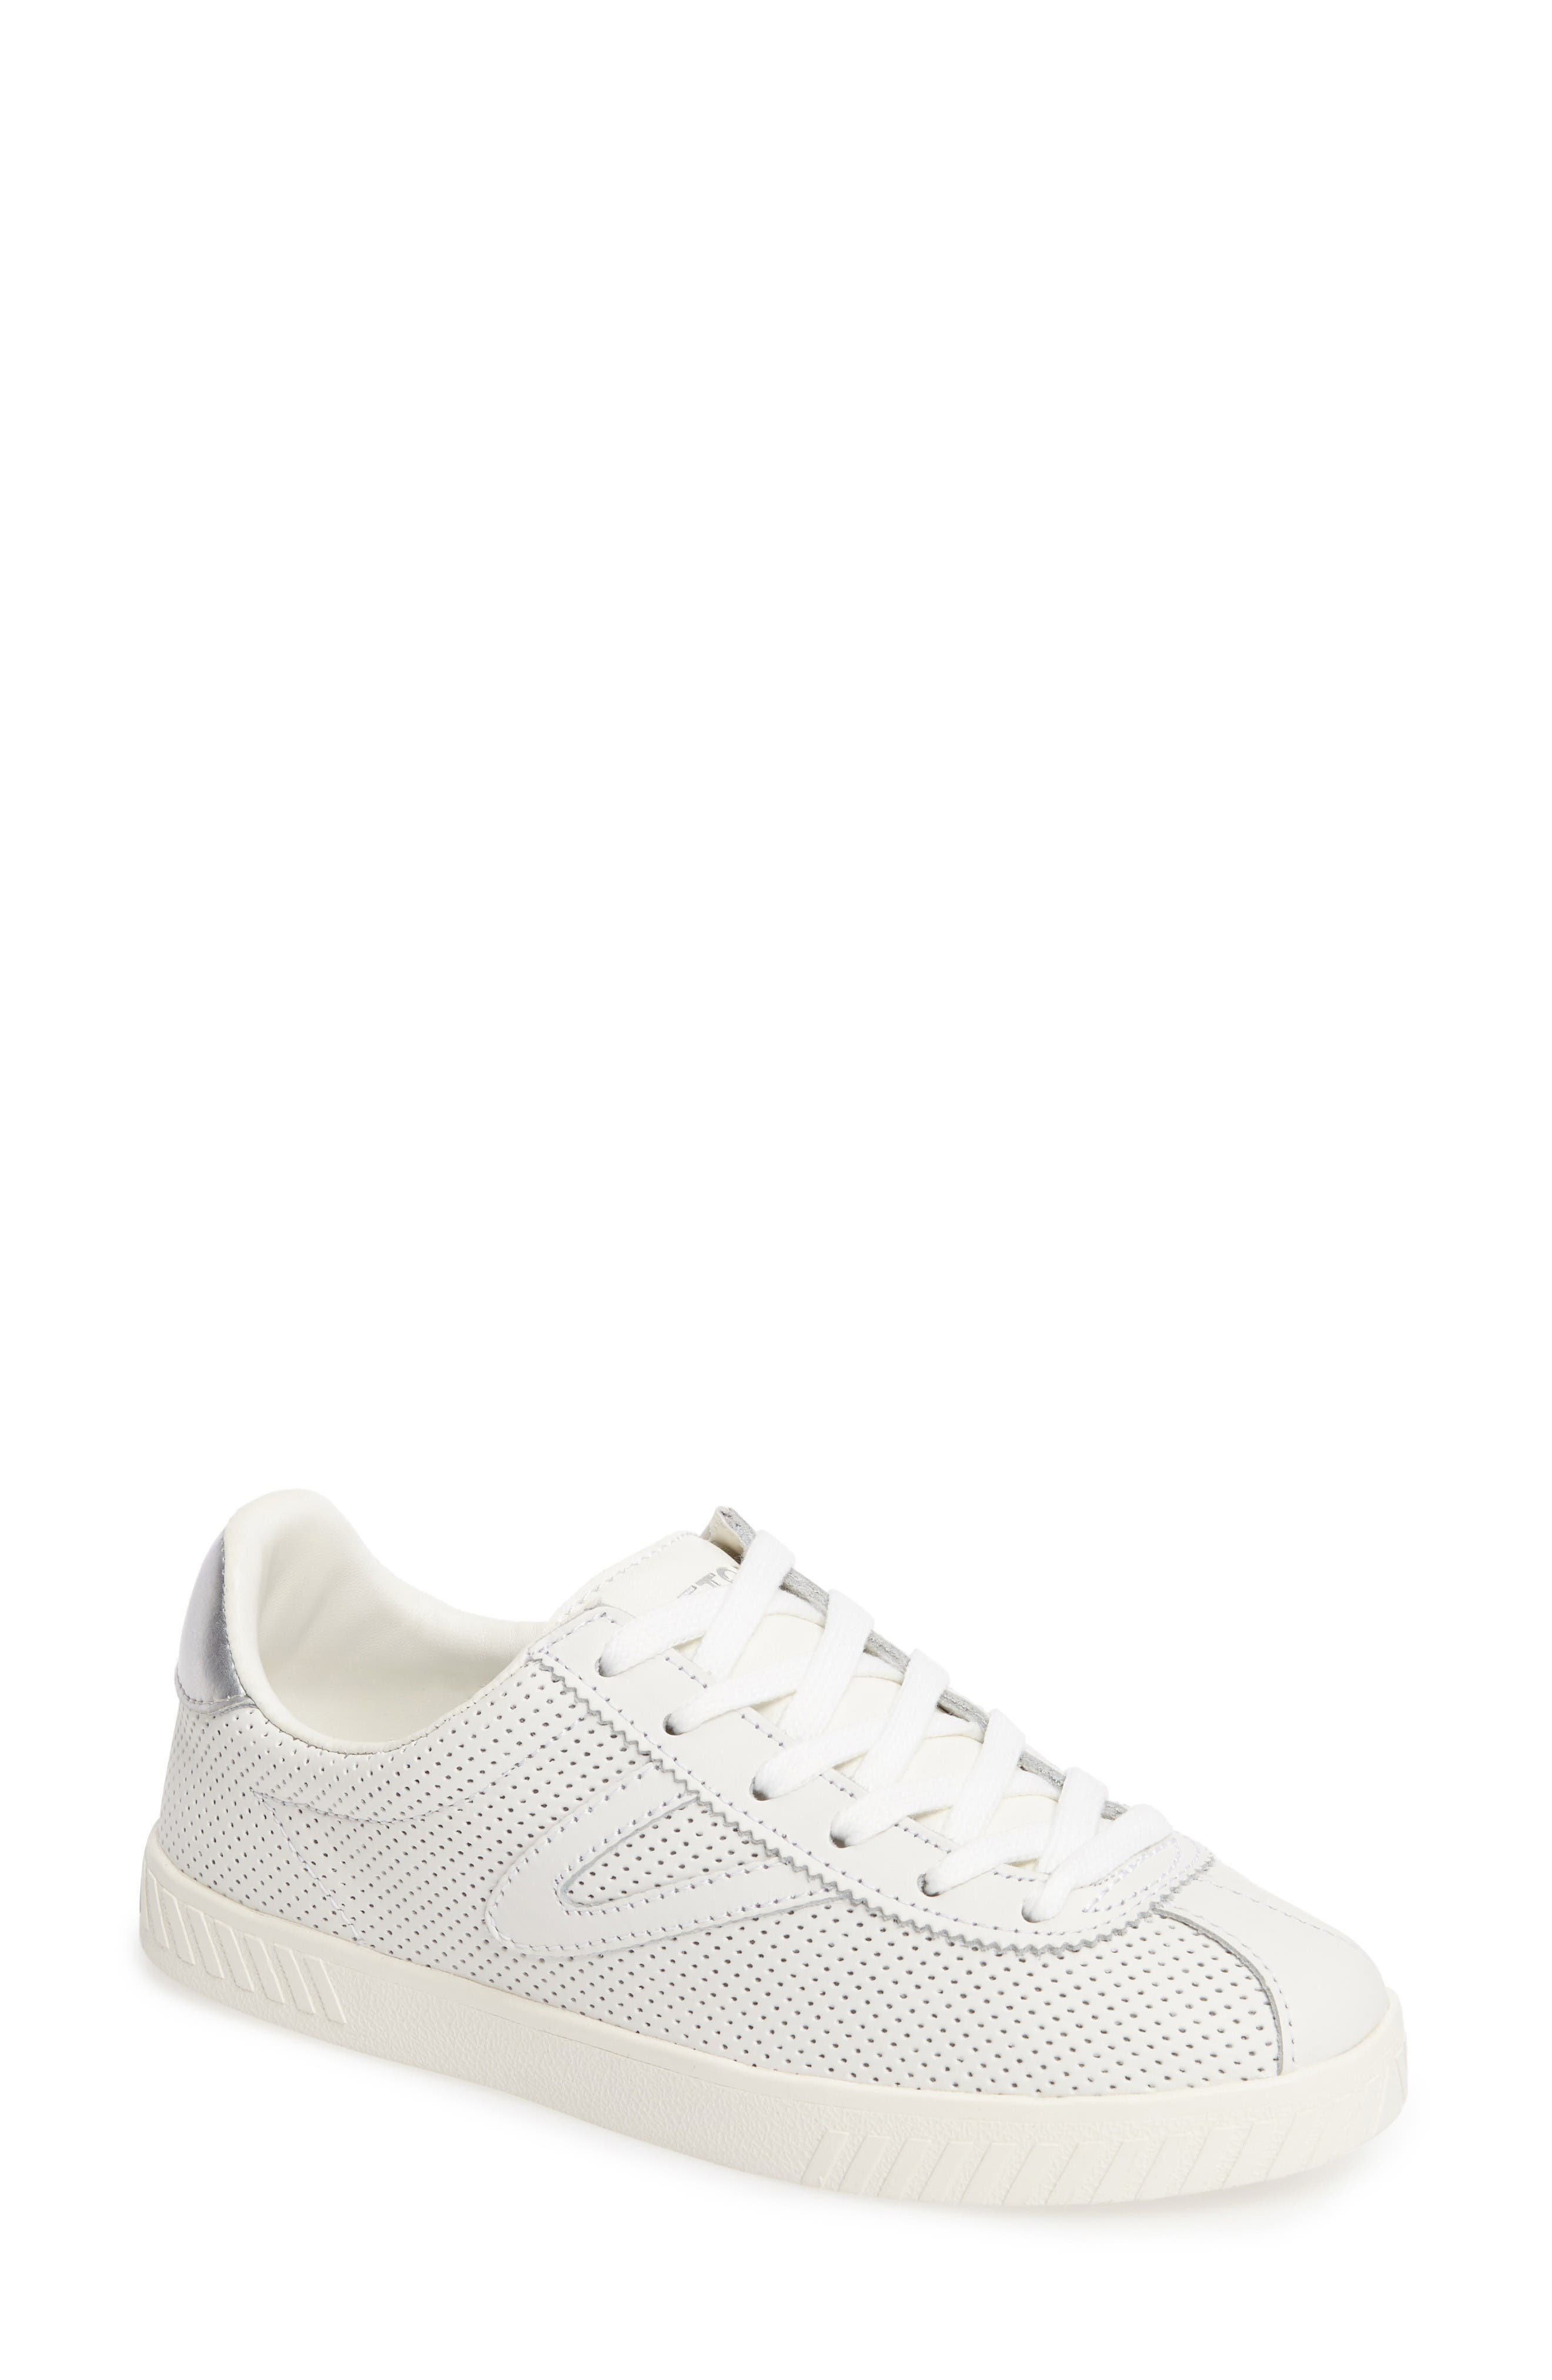 Alternate Image 1 Selected - Tretorn Camden 2 Sneaker (Women)